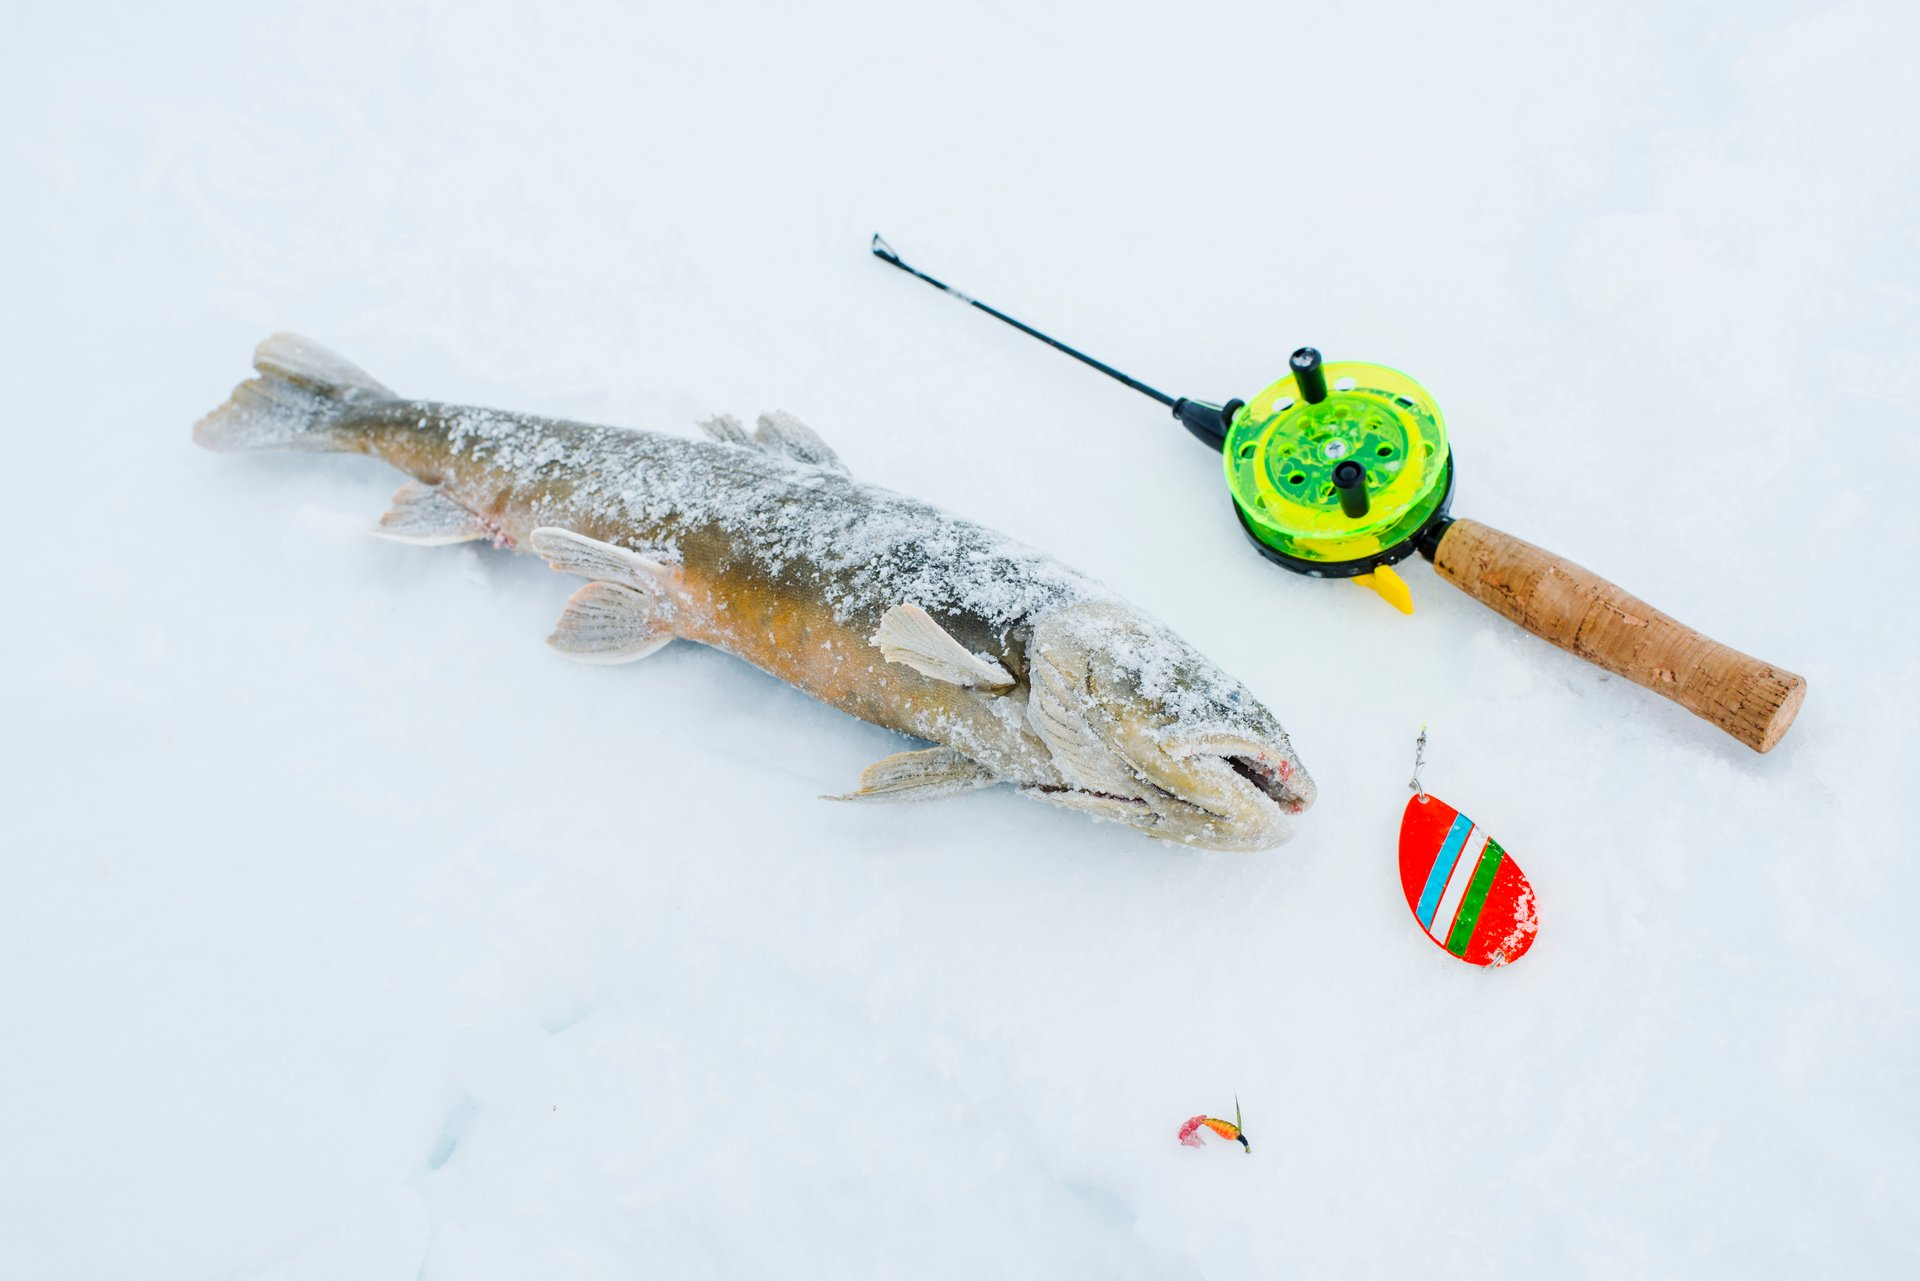 Ice Fishing in Finland 2020 - Best Time